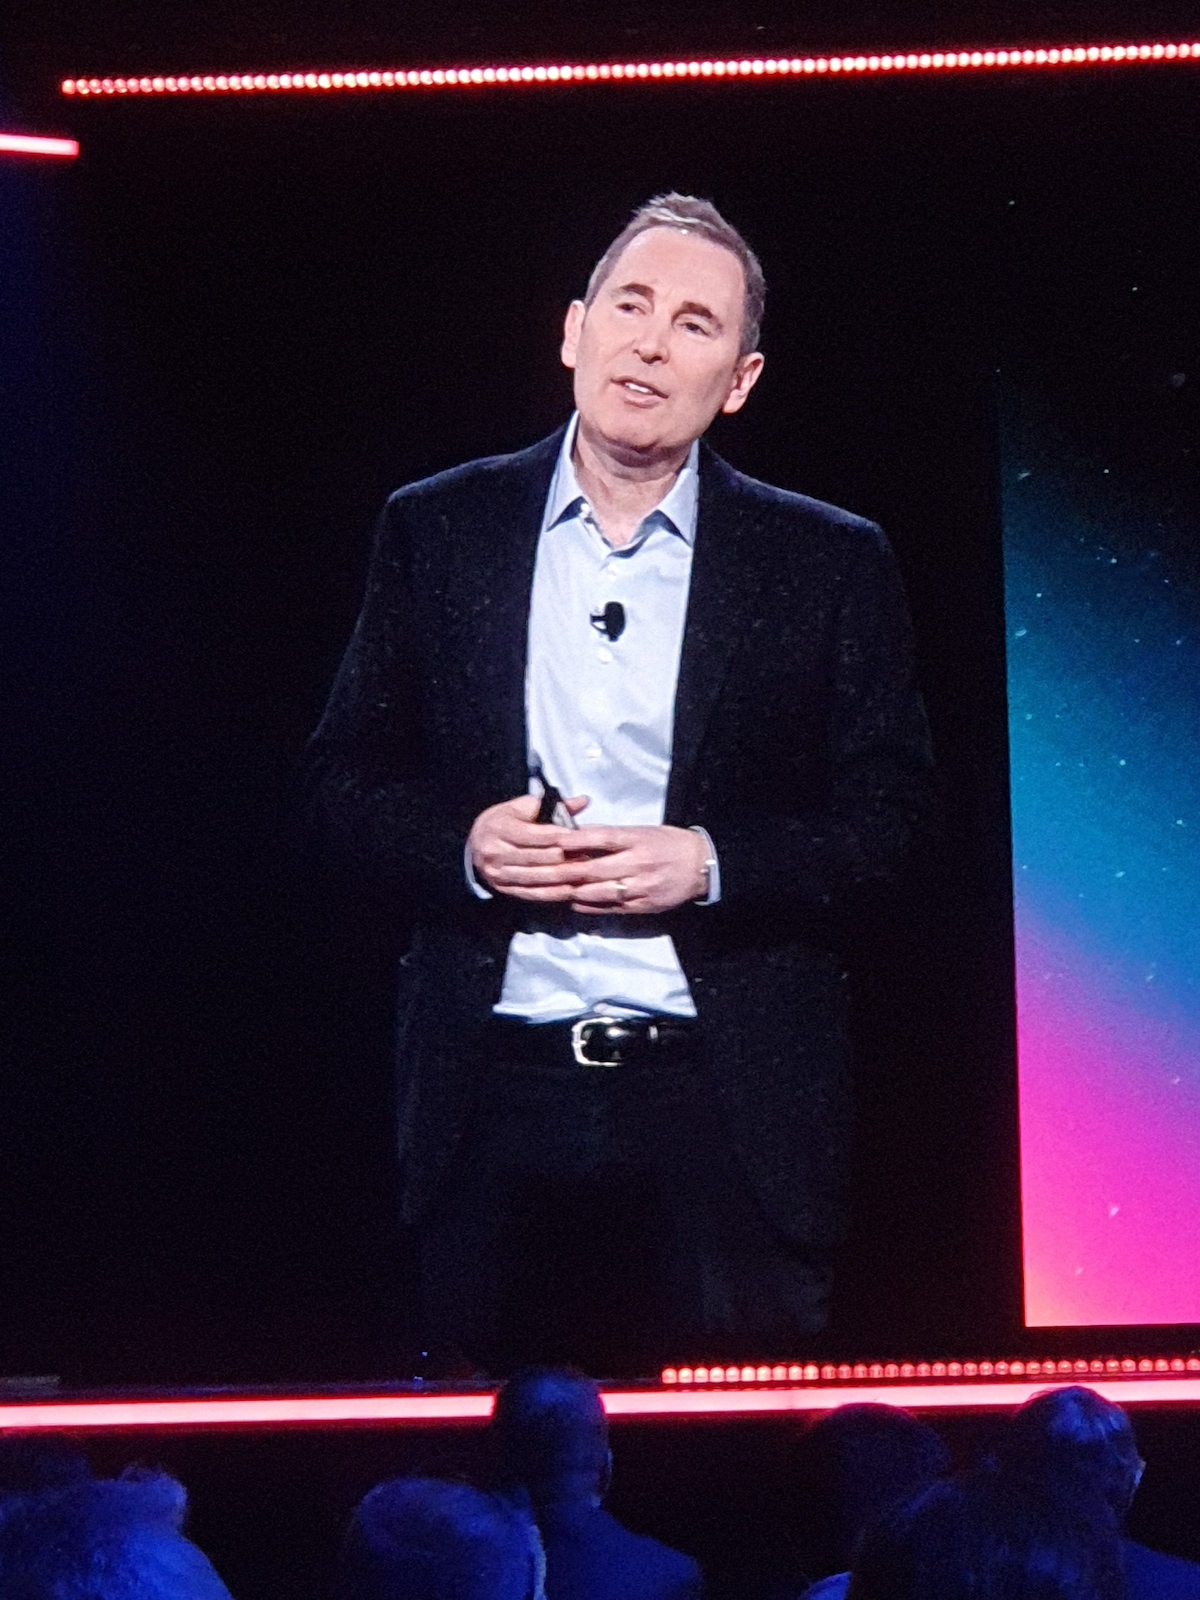 Aws ReInvent 2019 - Andy Jassy, Ceo di Aws